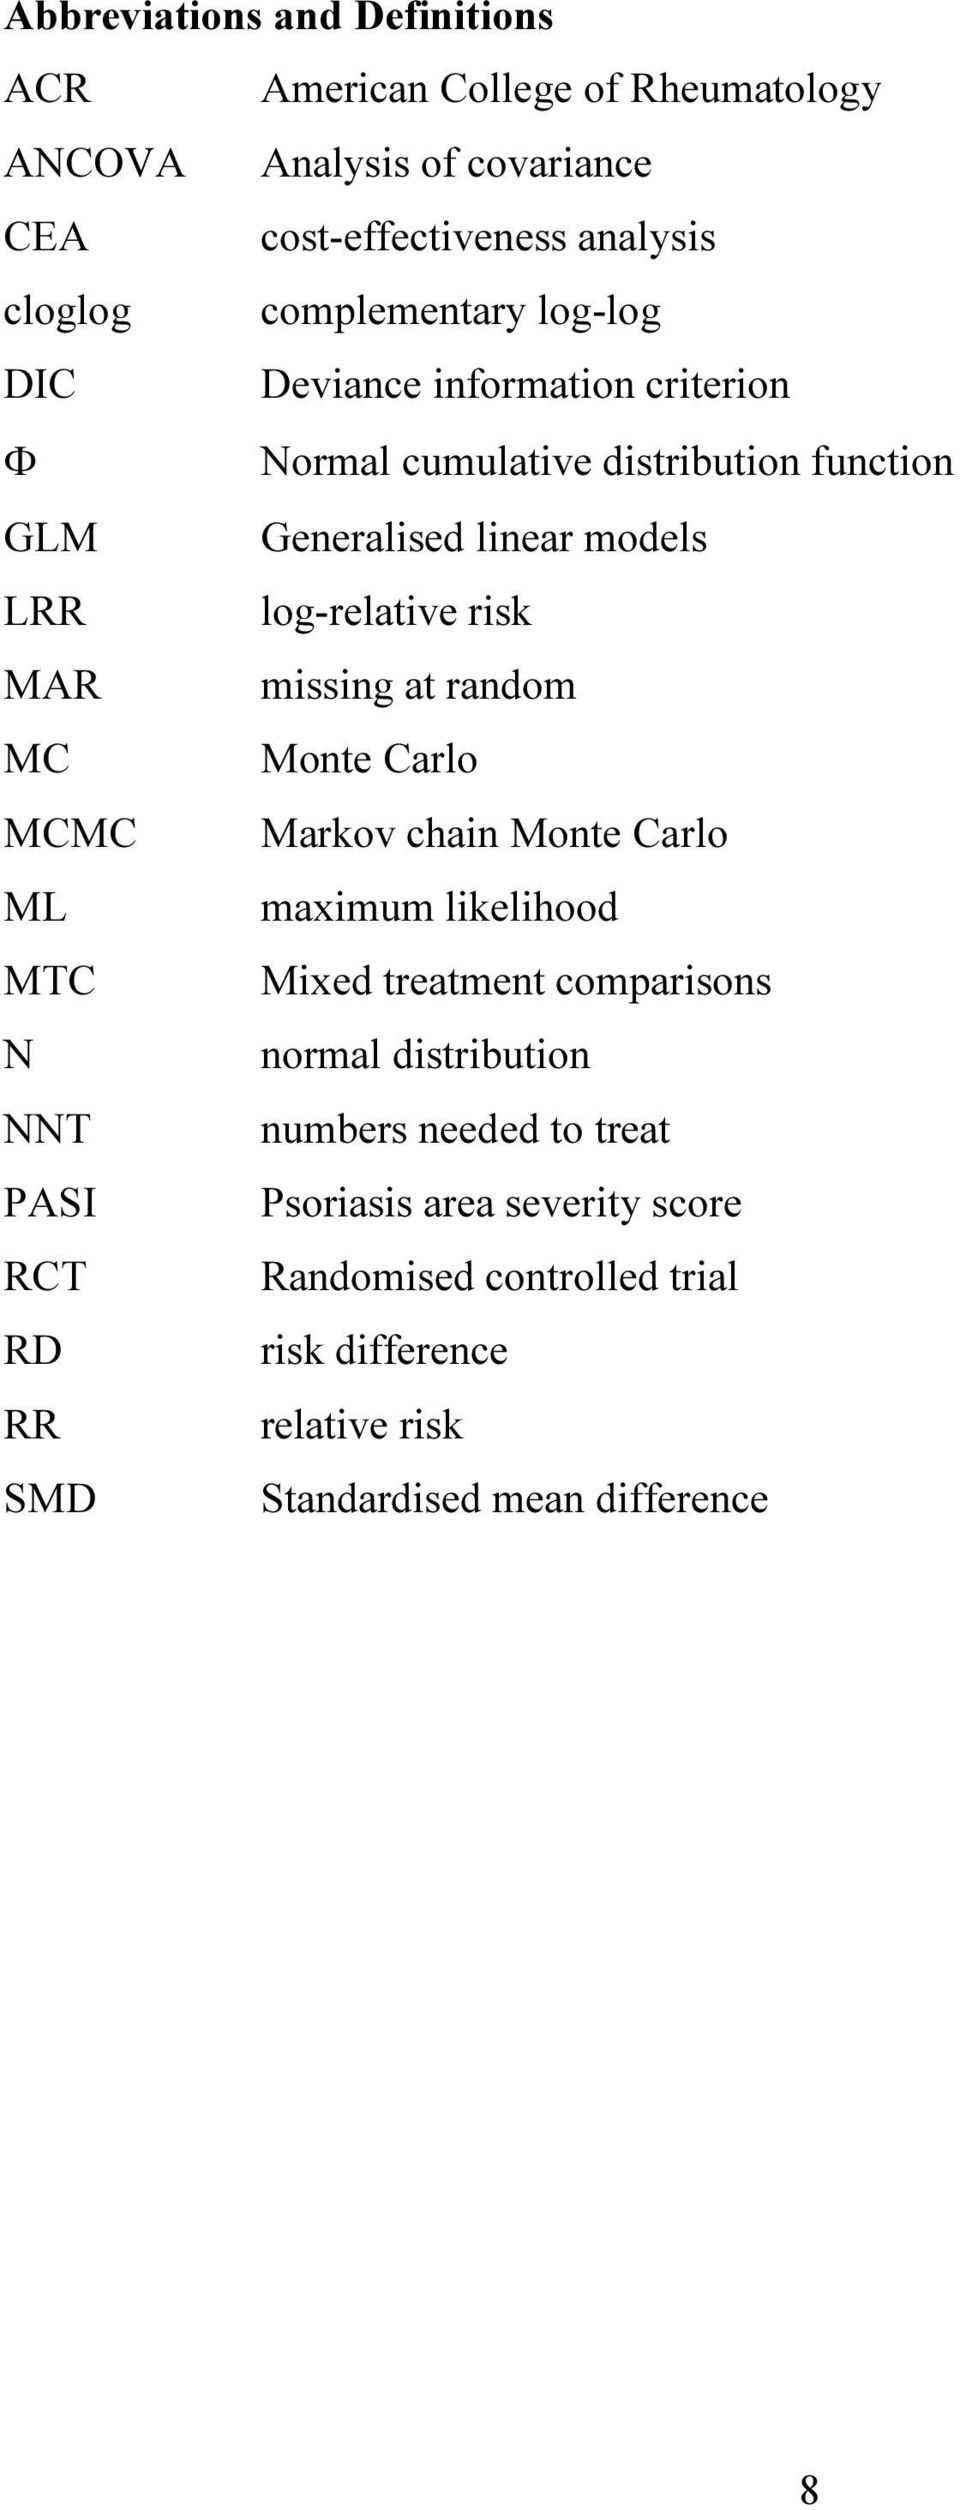 risk MAR missing at random MC Monte Carlo MCMC Markov chain Monte Carlo ML maximum likelihood MTC Mixed treatment comparisons N normal distribution